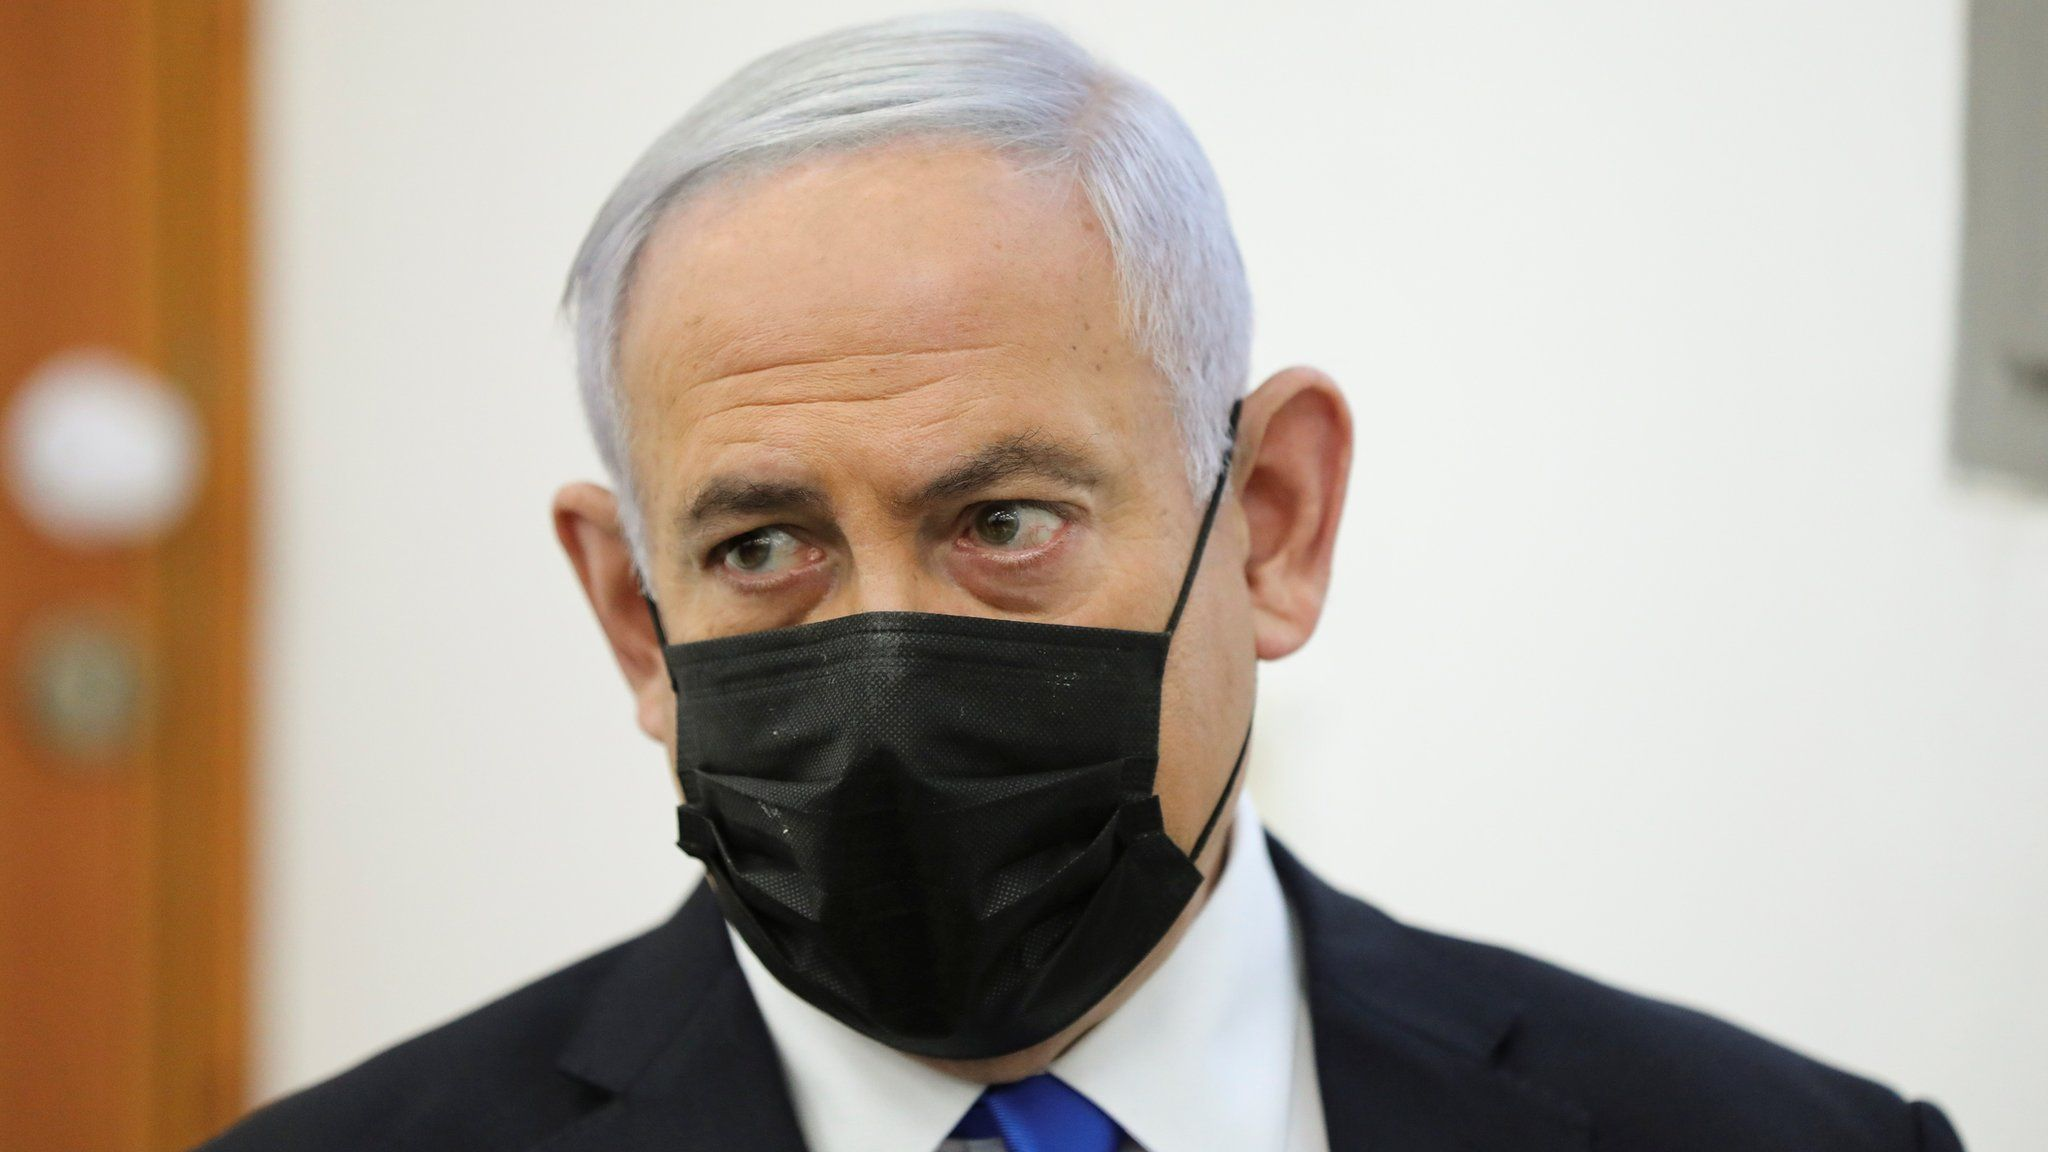 Netanyahu trial: Editor 'told to drop negative stories about Israel PM' thumbnail